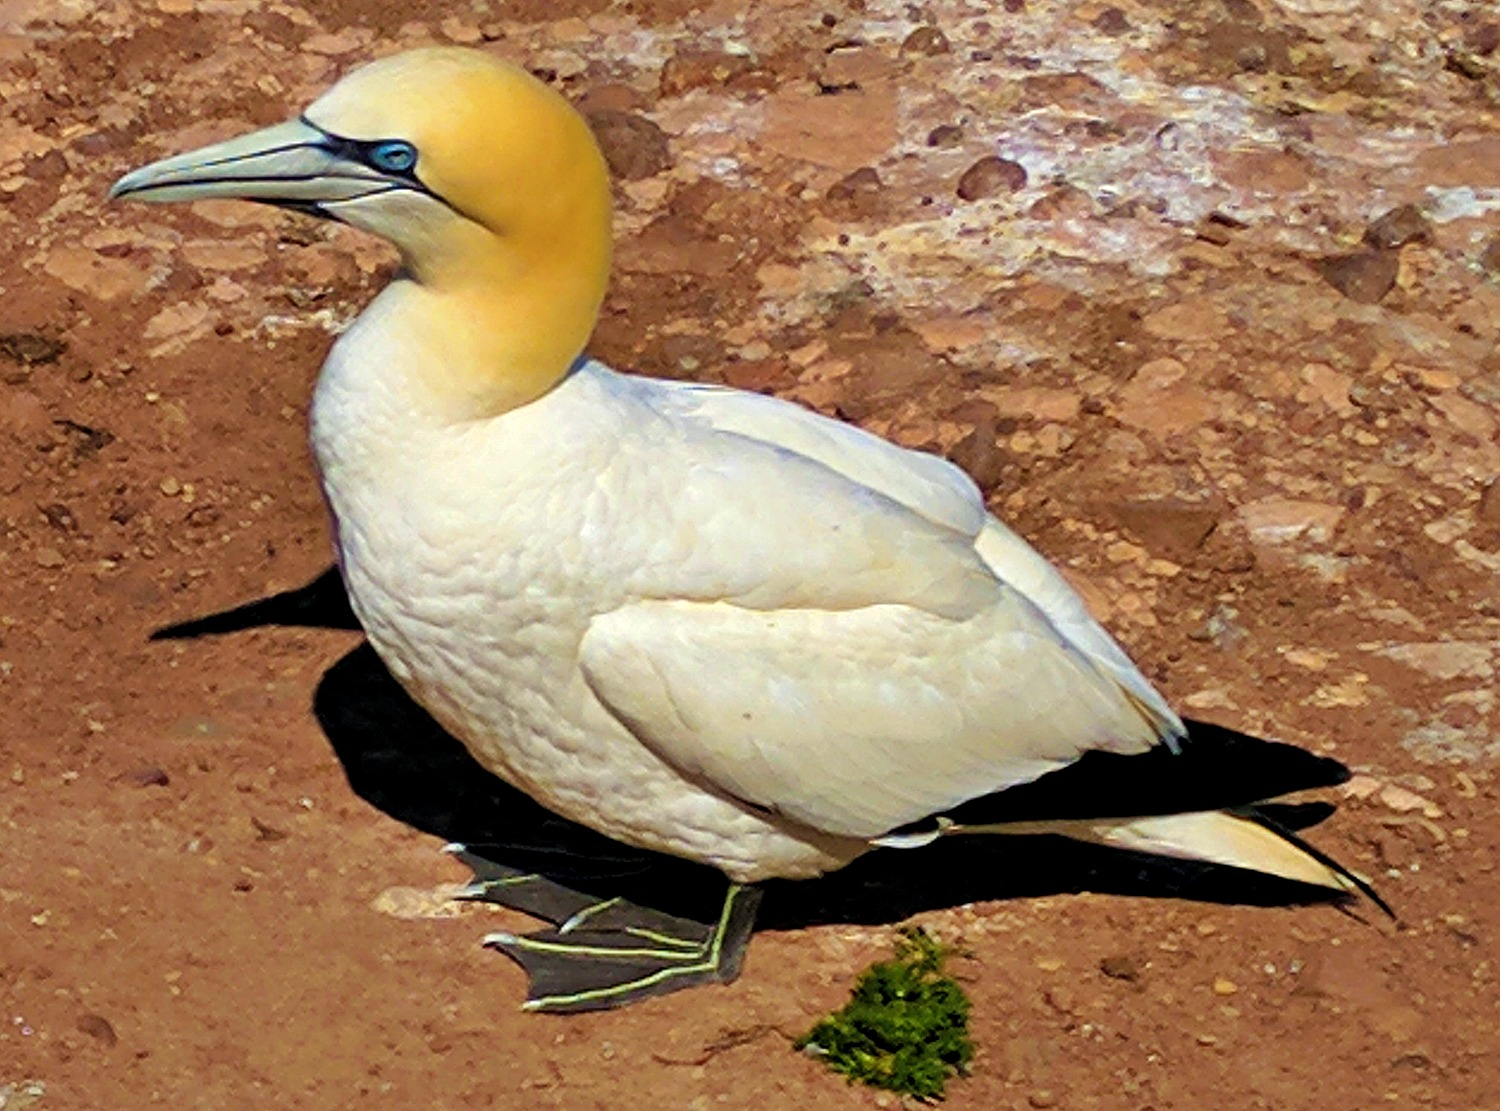 A road trip to the province of Quebec. A single gannet.